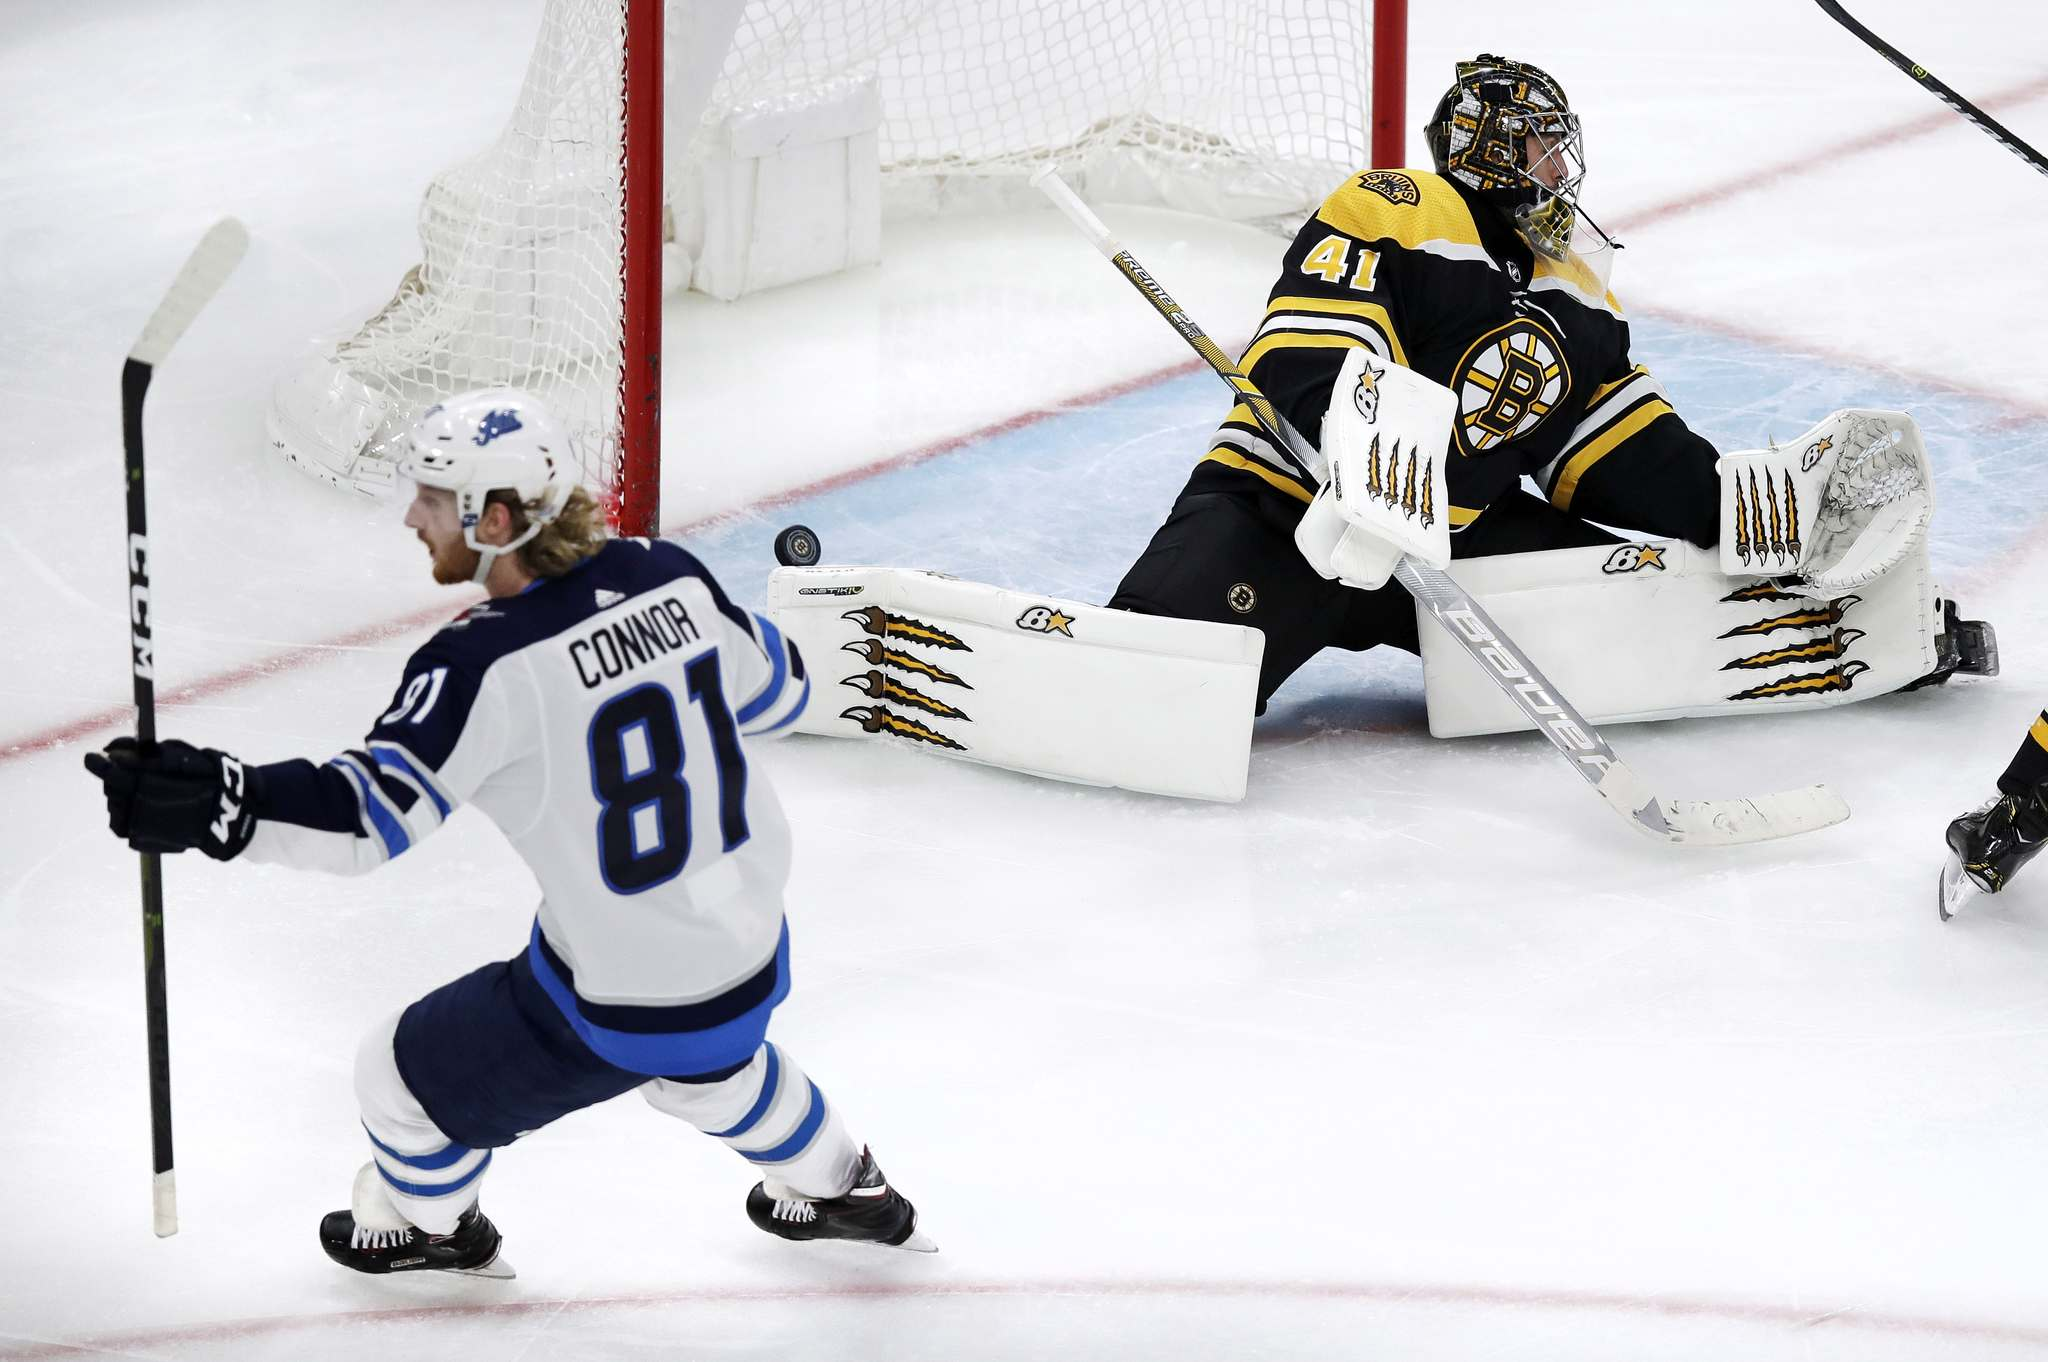 Kyle Connor has scored 22 goals this year including two in Boston Tuesday before adding another during a shootout. (Charles Krupa / The Associated Press files)</p>